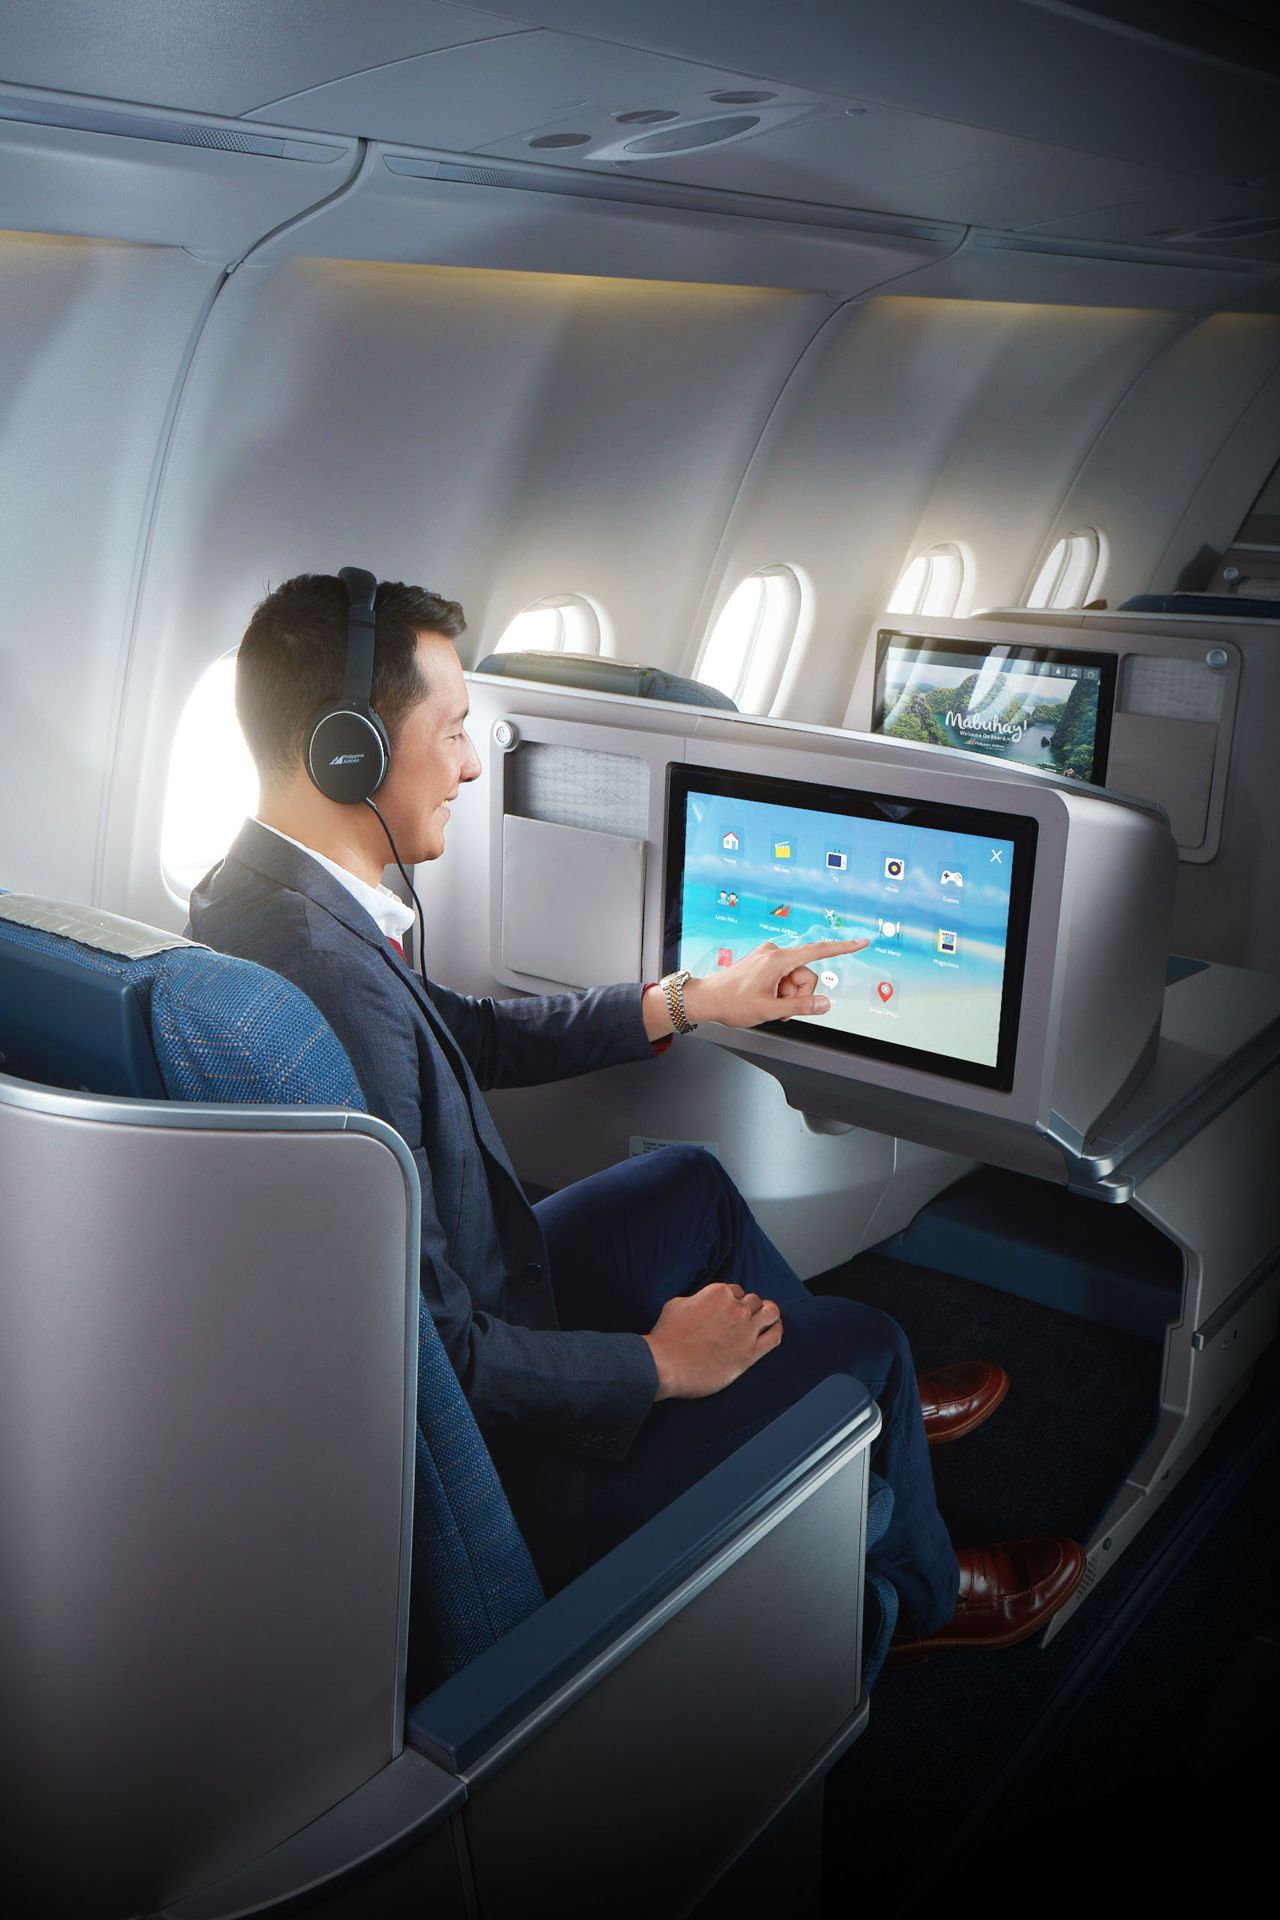 What To Expect On Your Next Long-Haul Flight With Philippine Airlines